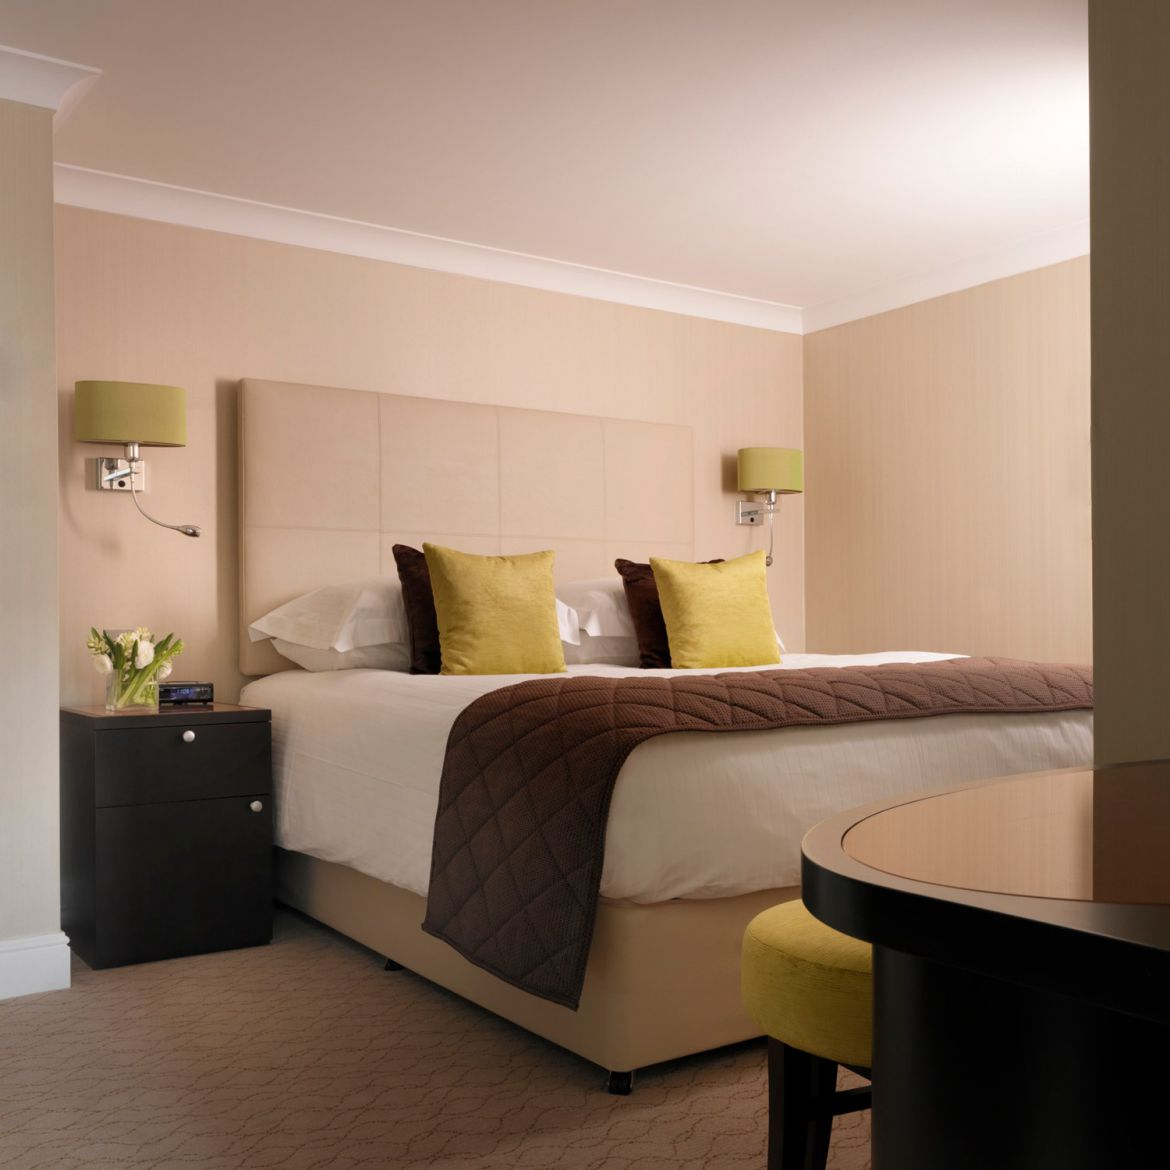 Bedroom-in-Calico-House-Serviced-Apartments-Bank,-The-City-of-London